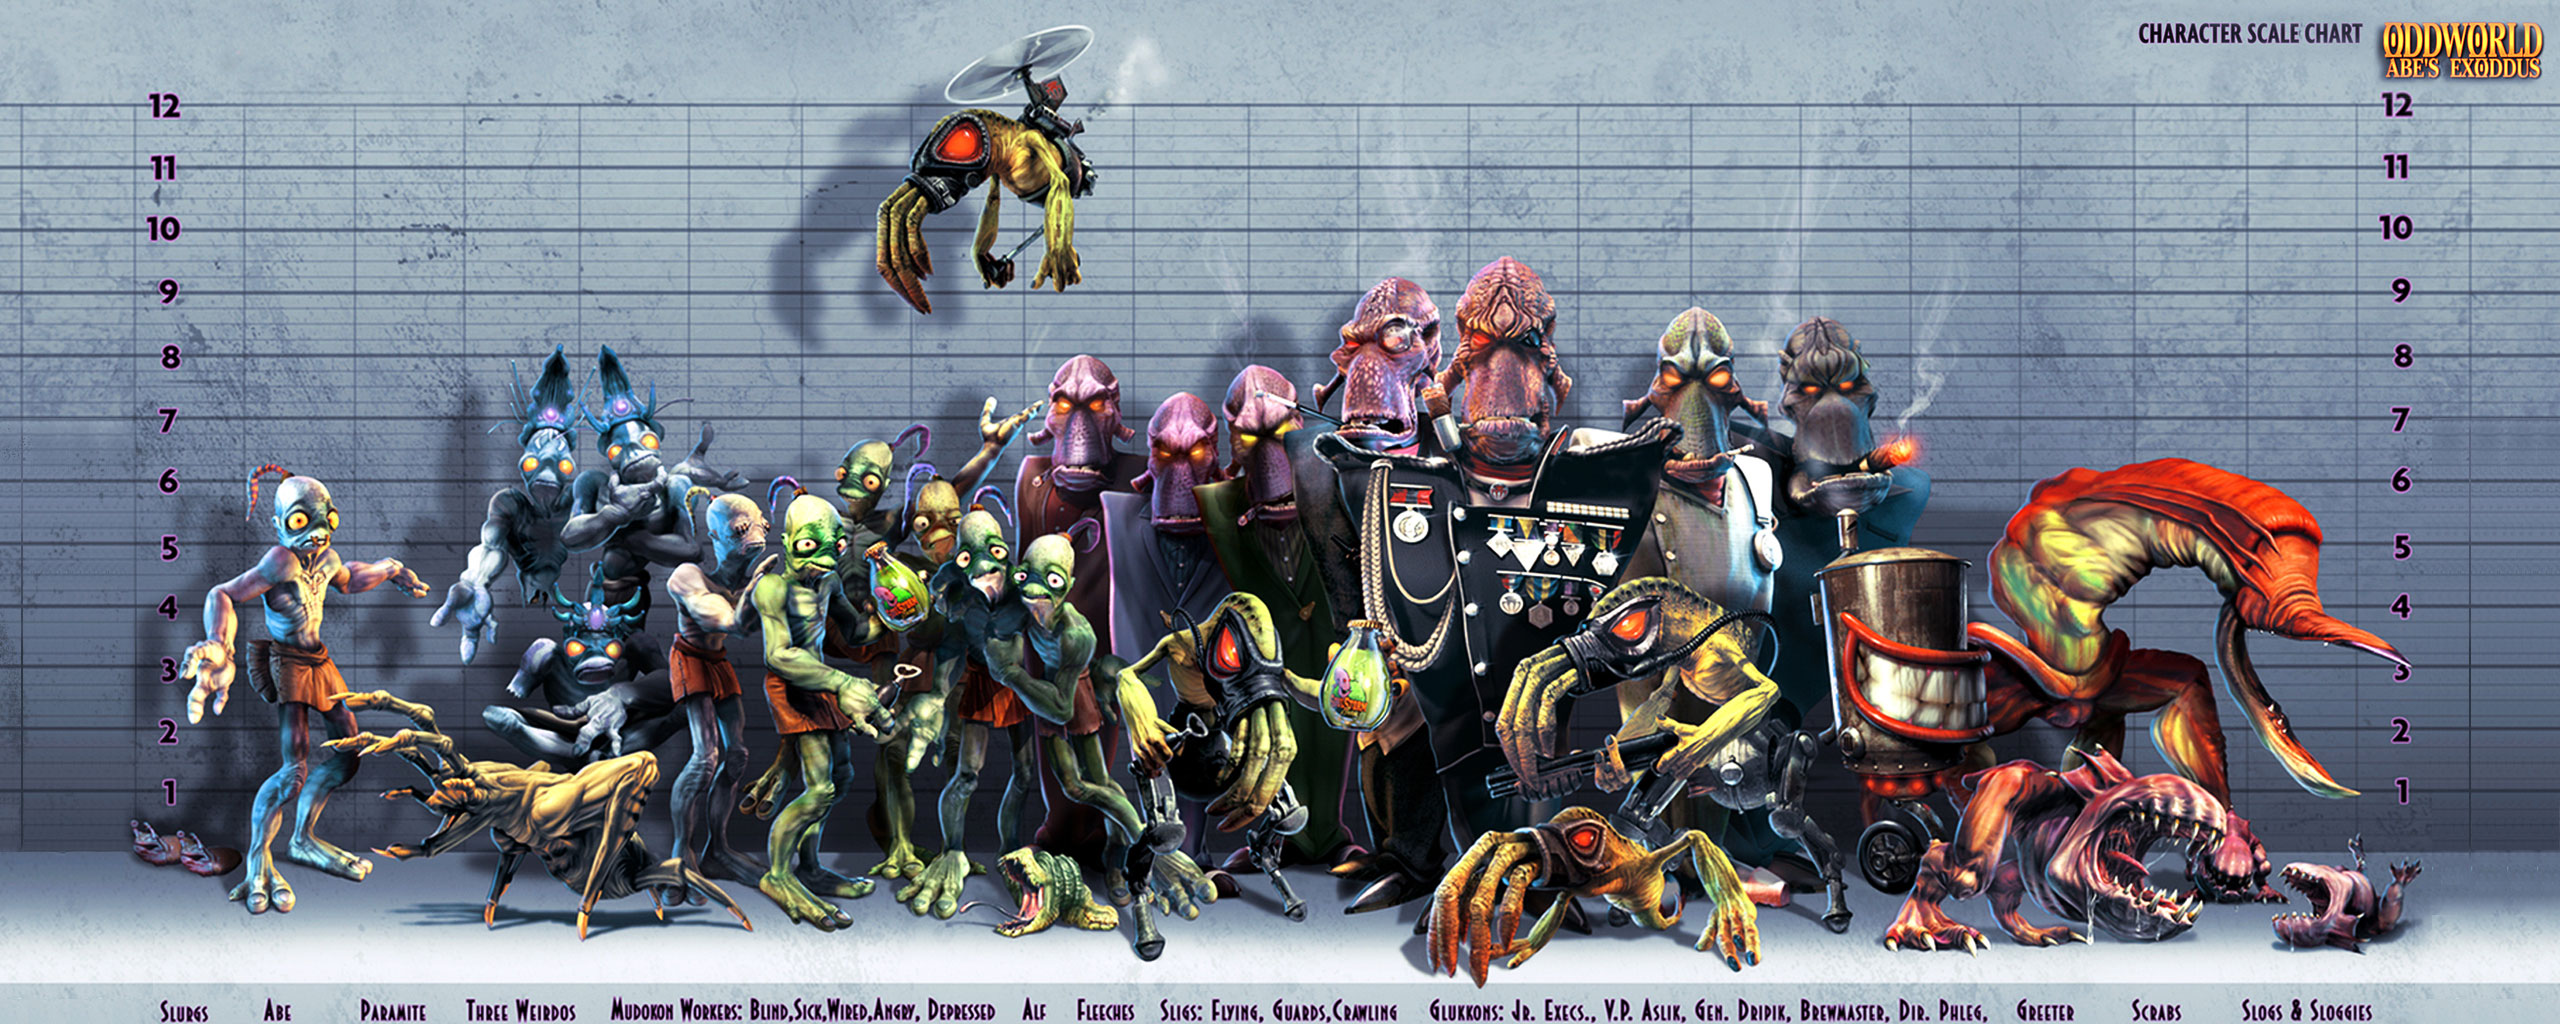 Games Wallpapers   The Oddworld Dual Screen wallpaper 2560x1024